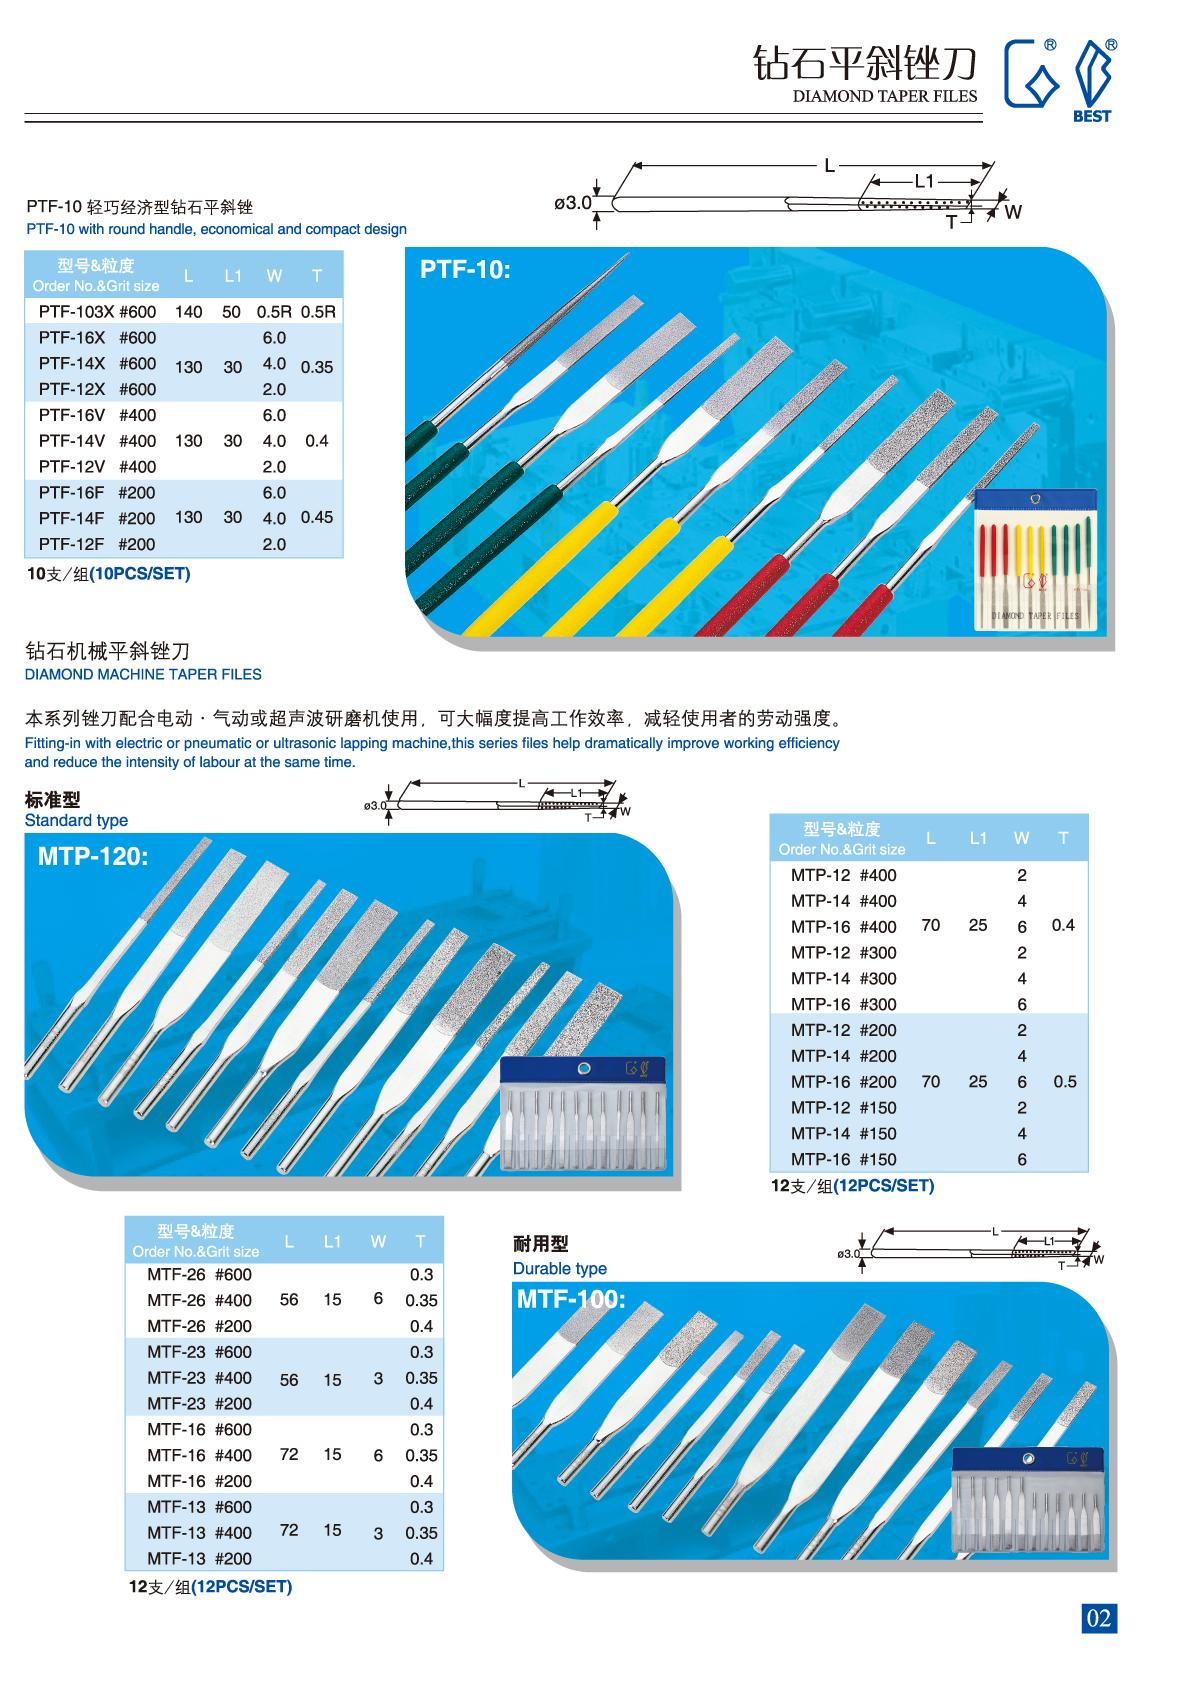 Diamond Taper Files PTF-10 ELECTROPLATED